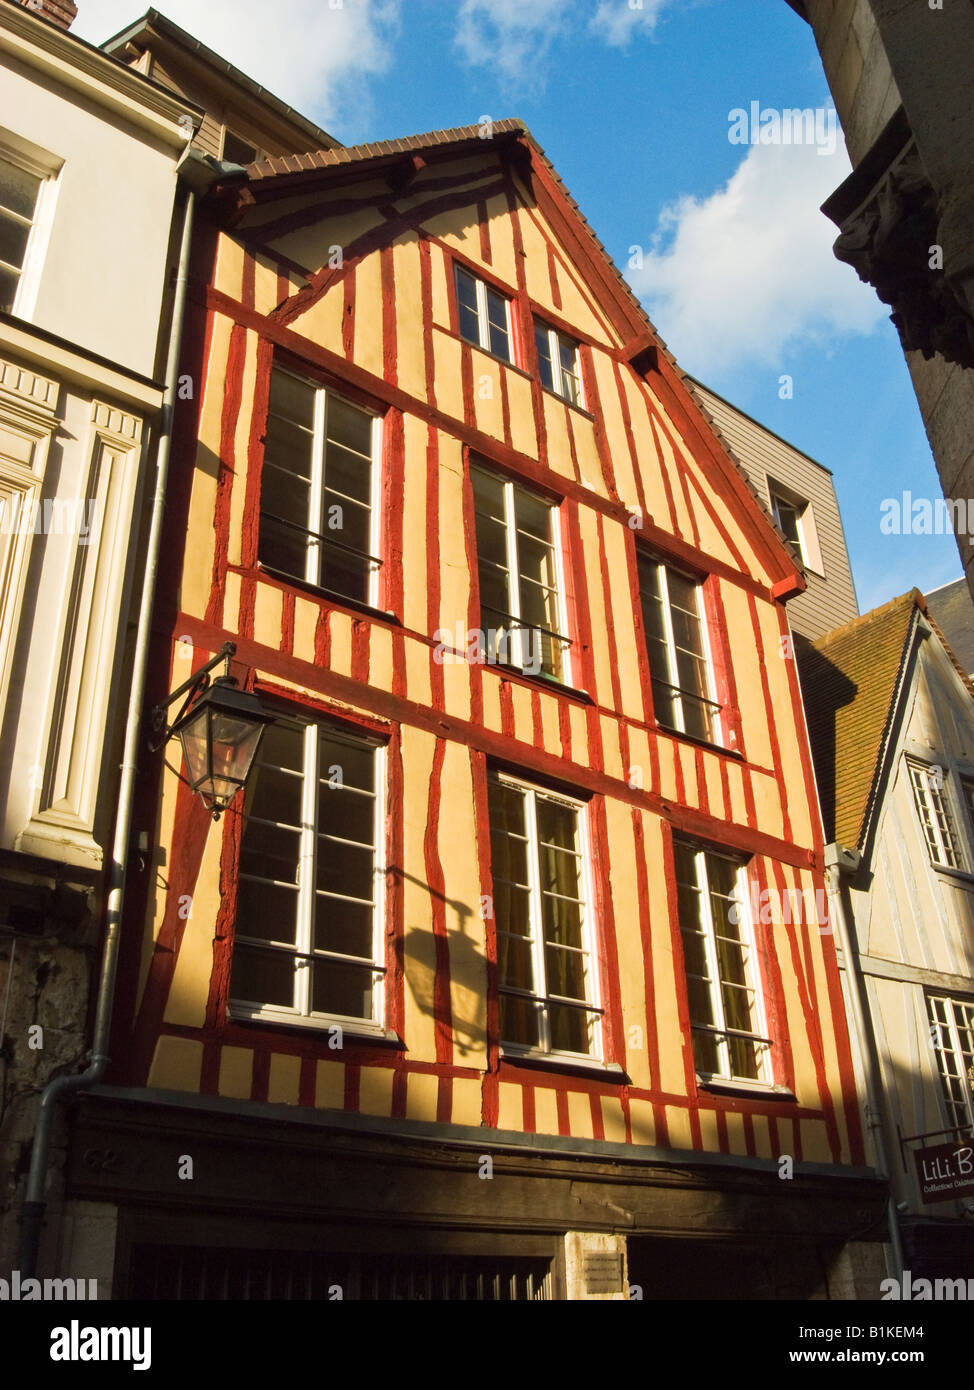 Period half timbered building in centre of Rouen Normandy France EU - Stock Image